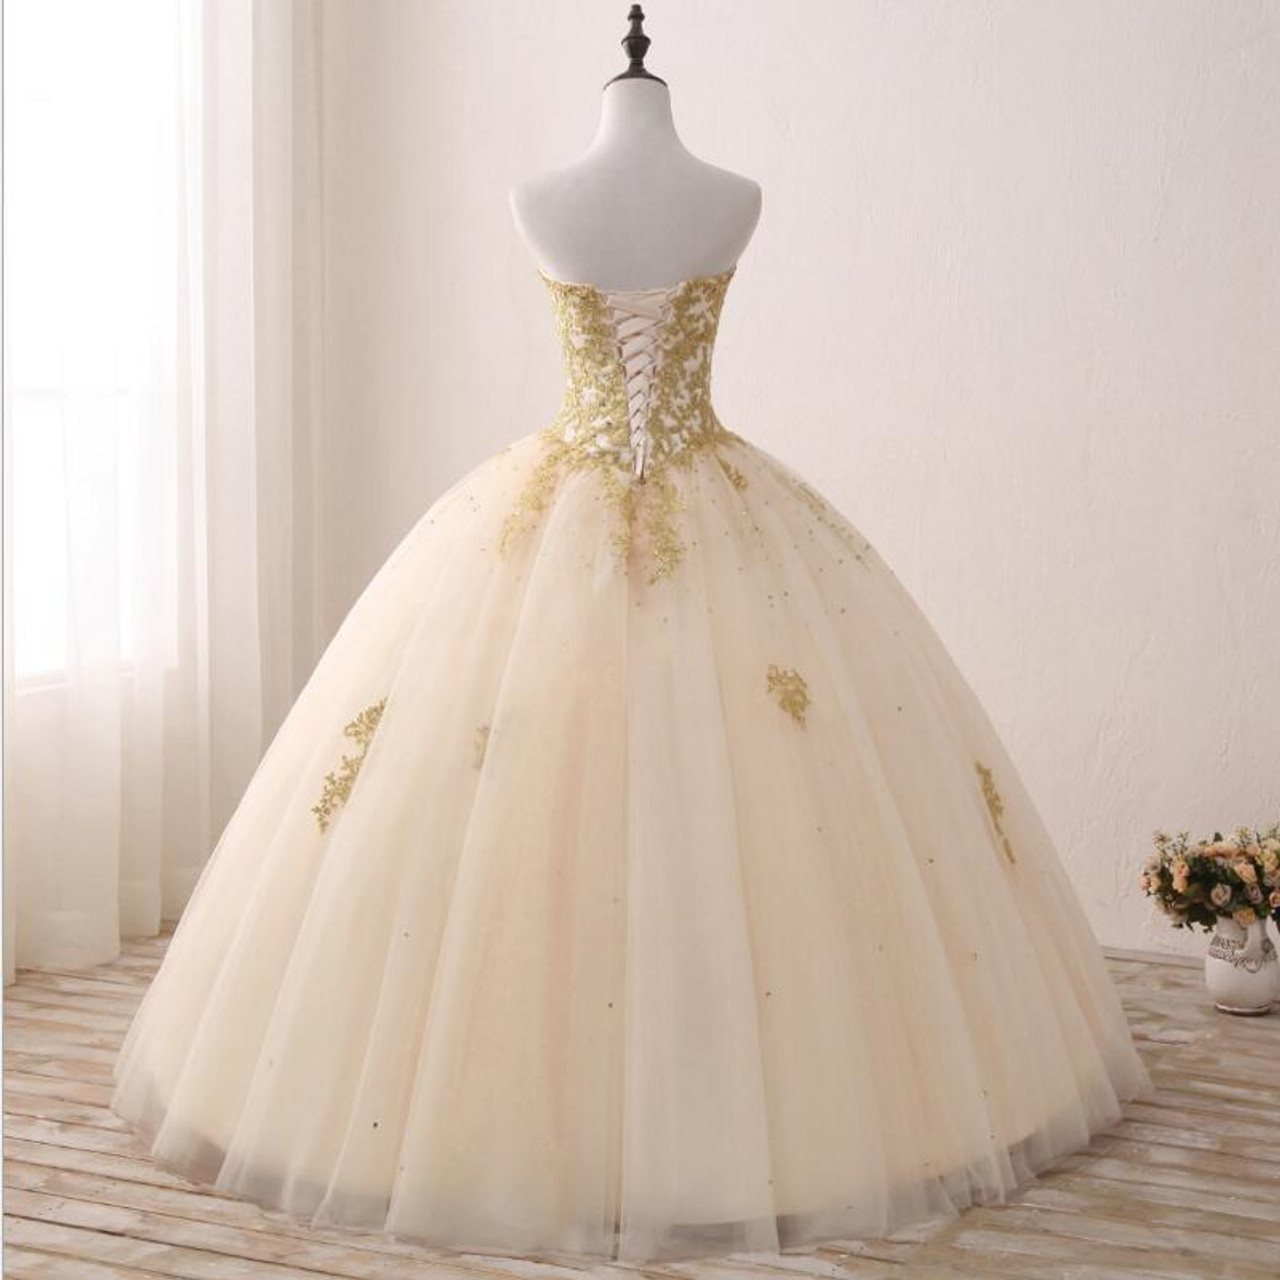 f10e3e5f0169d Fansmile Vintage Golden Lace Up Ball Wedding Dresses 2019 Real Photo Robe  de Mariee Customized Plus Size Bridal Gowns FSM-343F